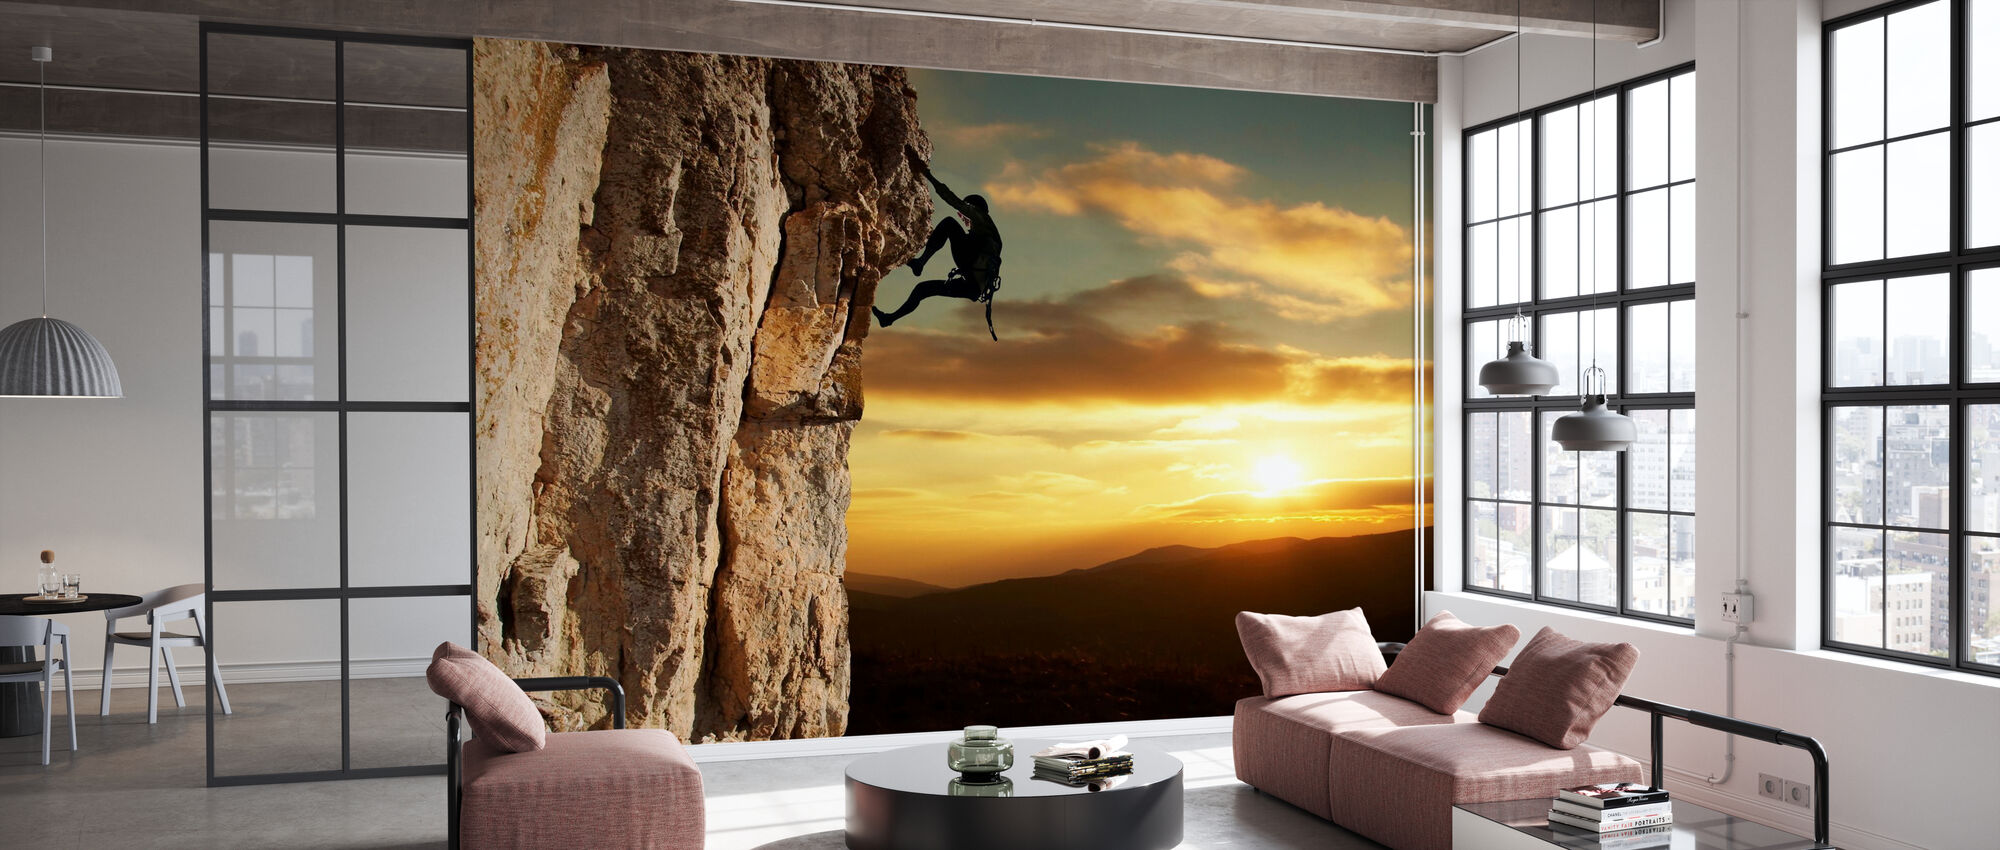 Rock Climber - Wallpaper - Office